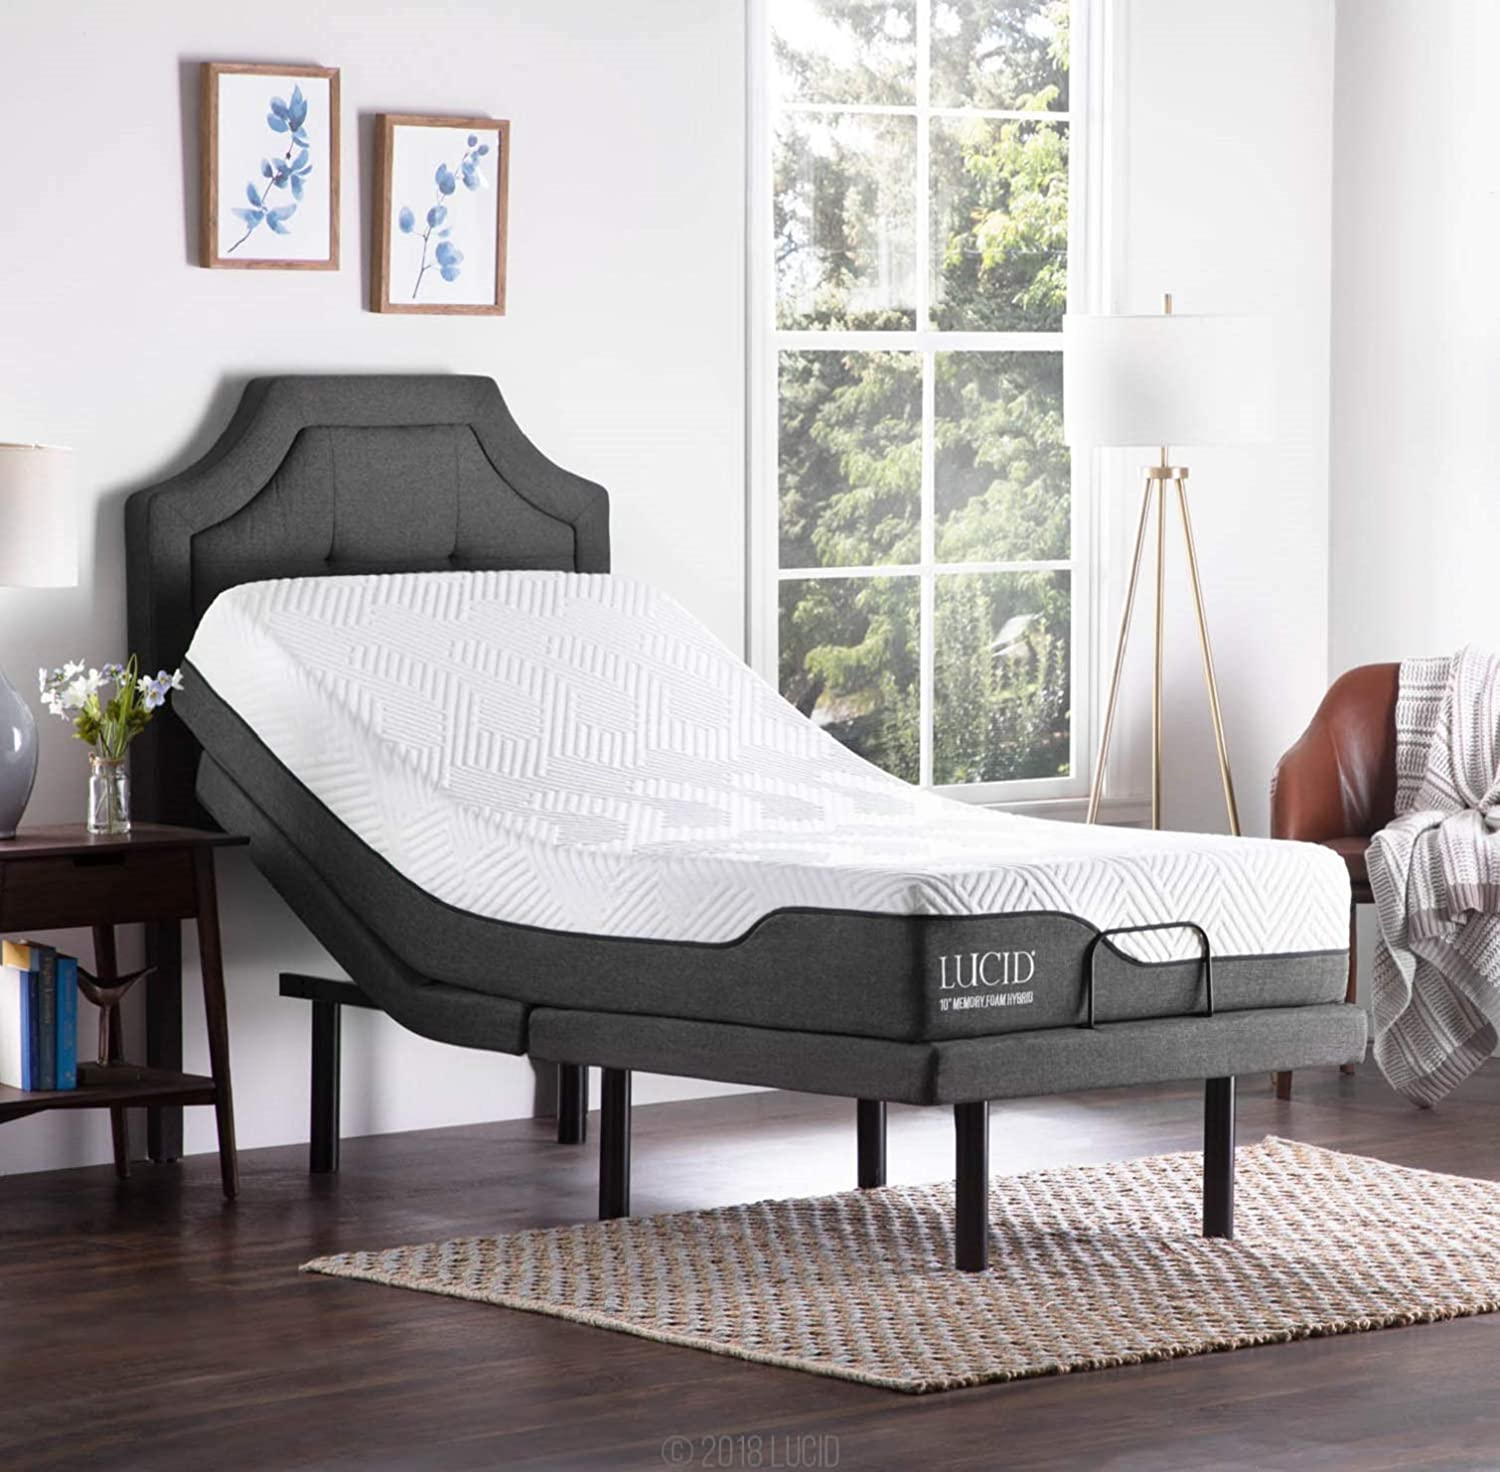 LUCID L300 Adjustable Bed Base with LUCID 10 Inch Memory Foam Hybrid Mattress